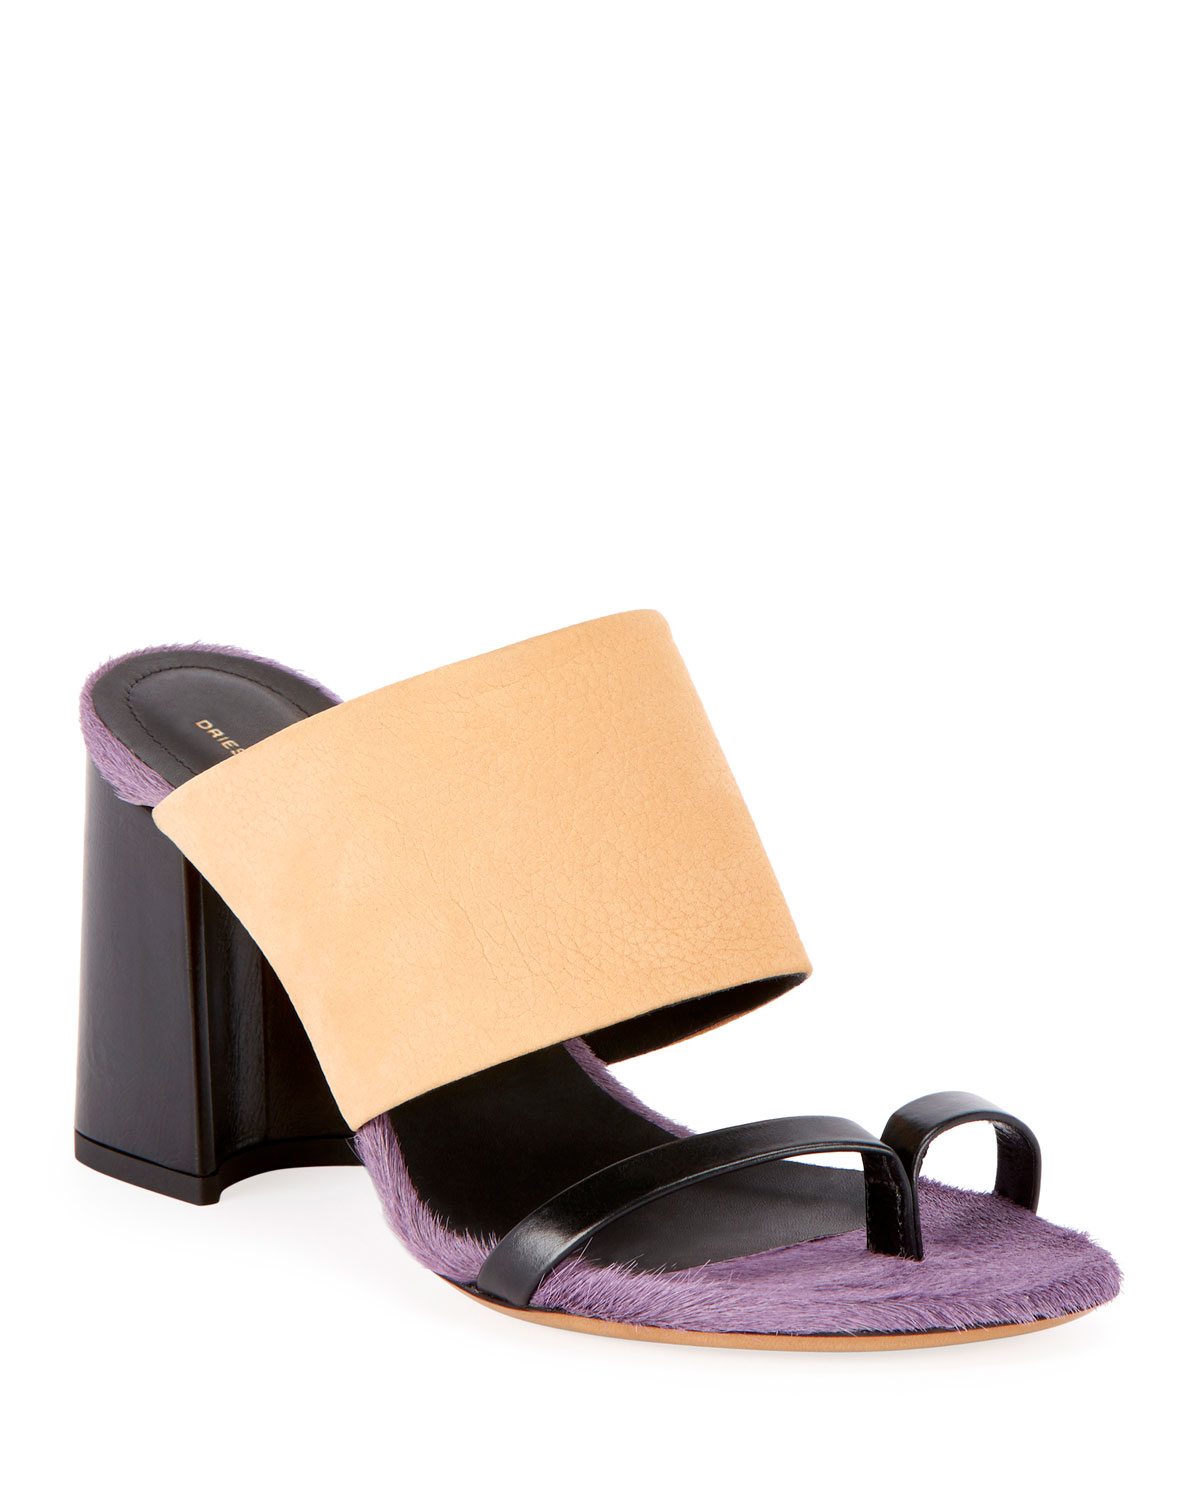 ddf9d459c3 Dries Van Noten Calf-Hair Trim Toe-Ring Chunky Slide Sandals ...